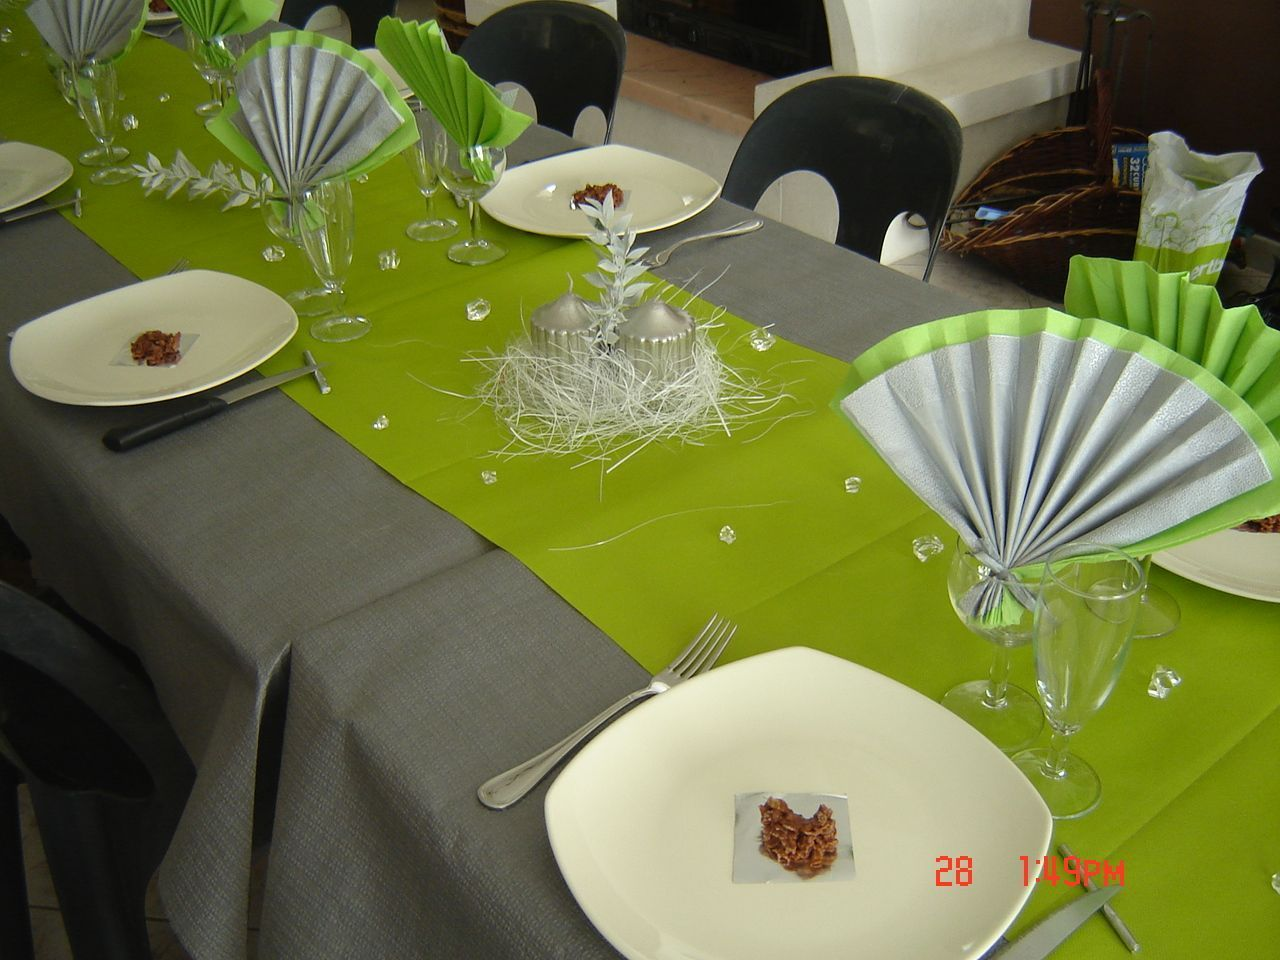 Deco de tables - Deco table d anniversaire ...